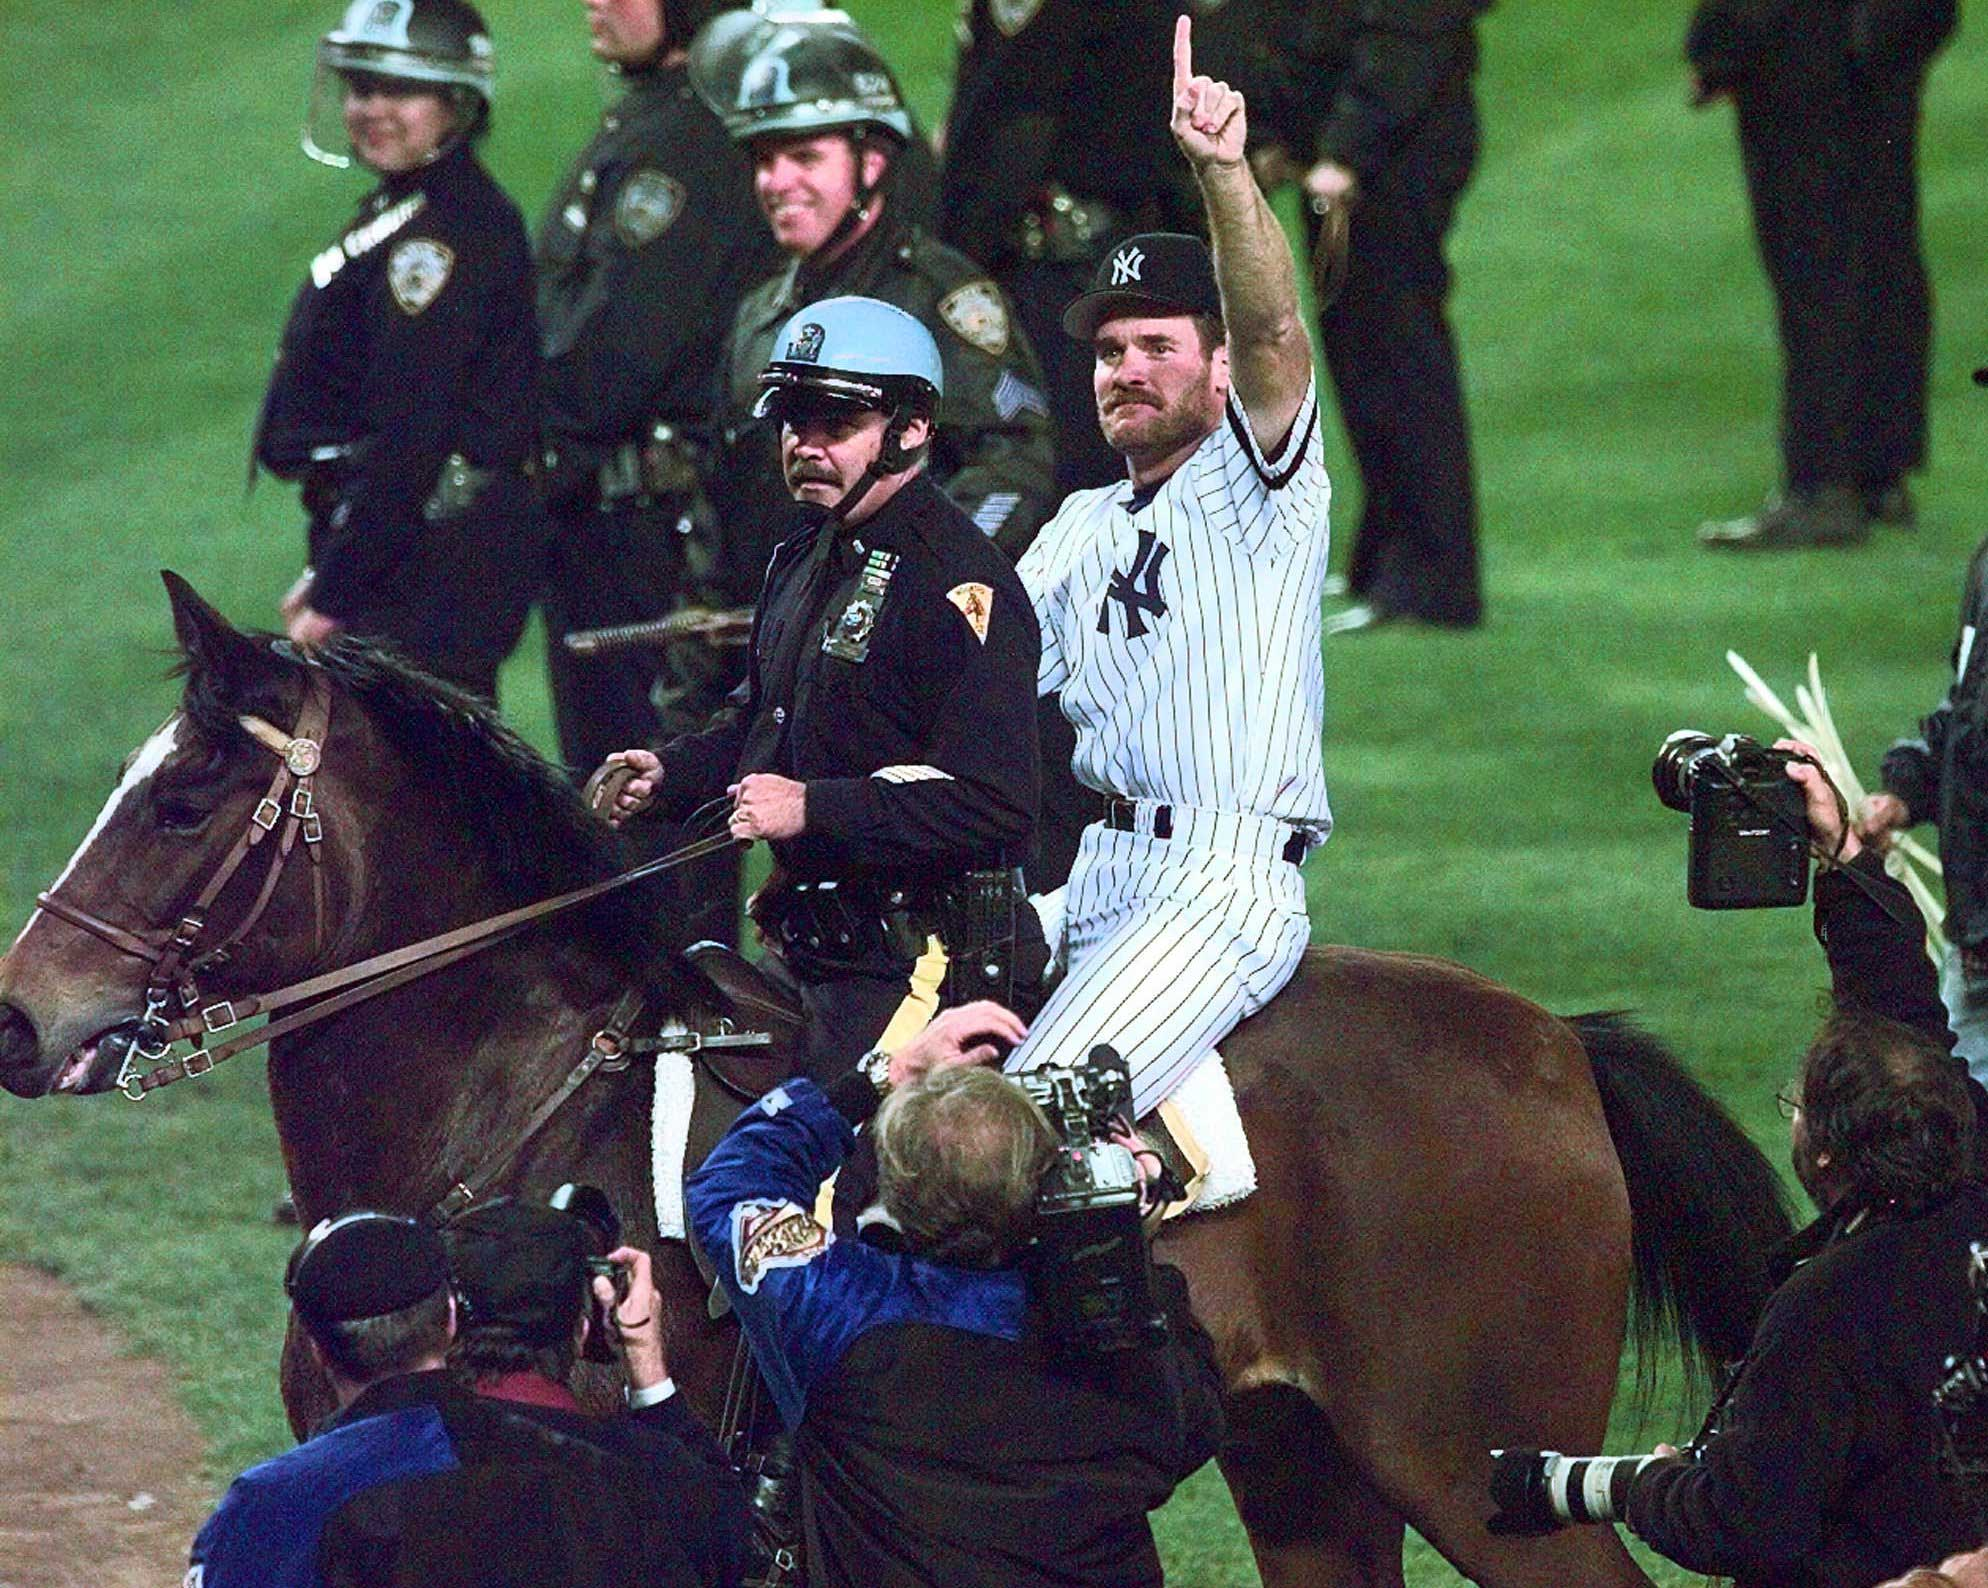 New York Yankees Wade Boggs rides a police horse around the field after the Yankees defeated the Atlanta Braves 3-2 in  Game 6 of the World Series to win the Series  at Yankee Stadium in New York, Saturday, Oct. 26, 1996.